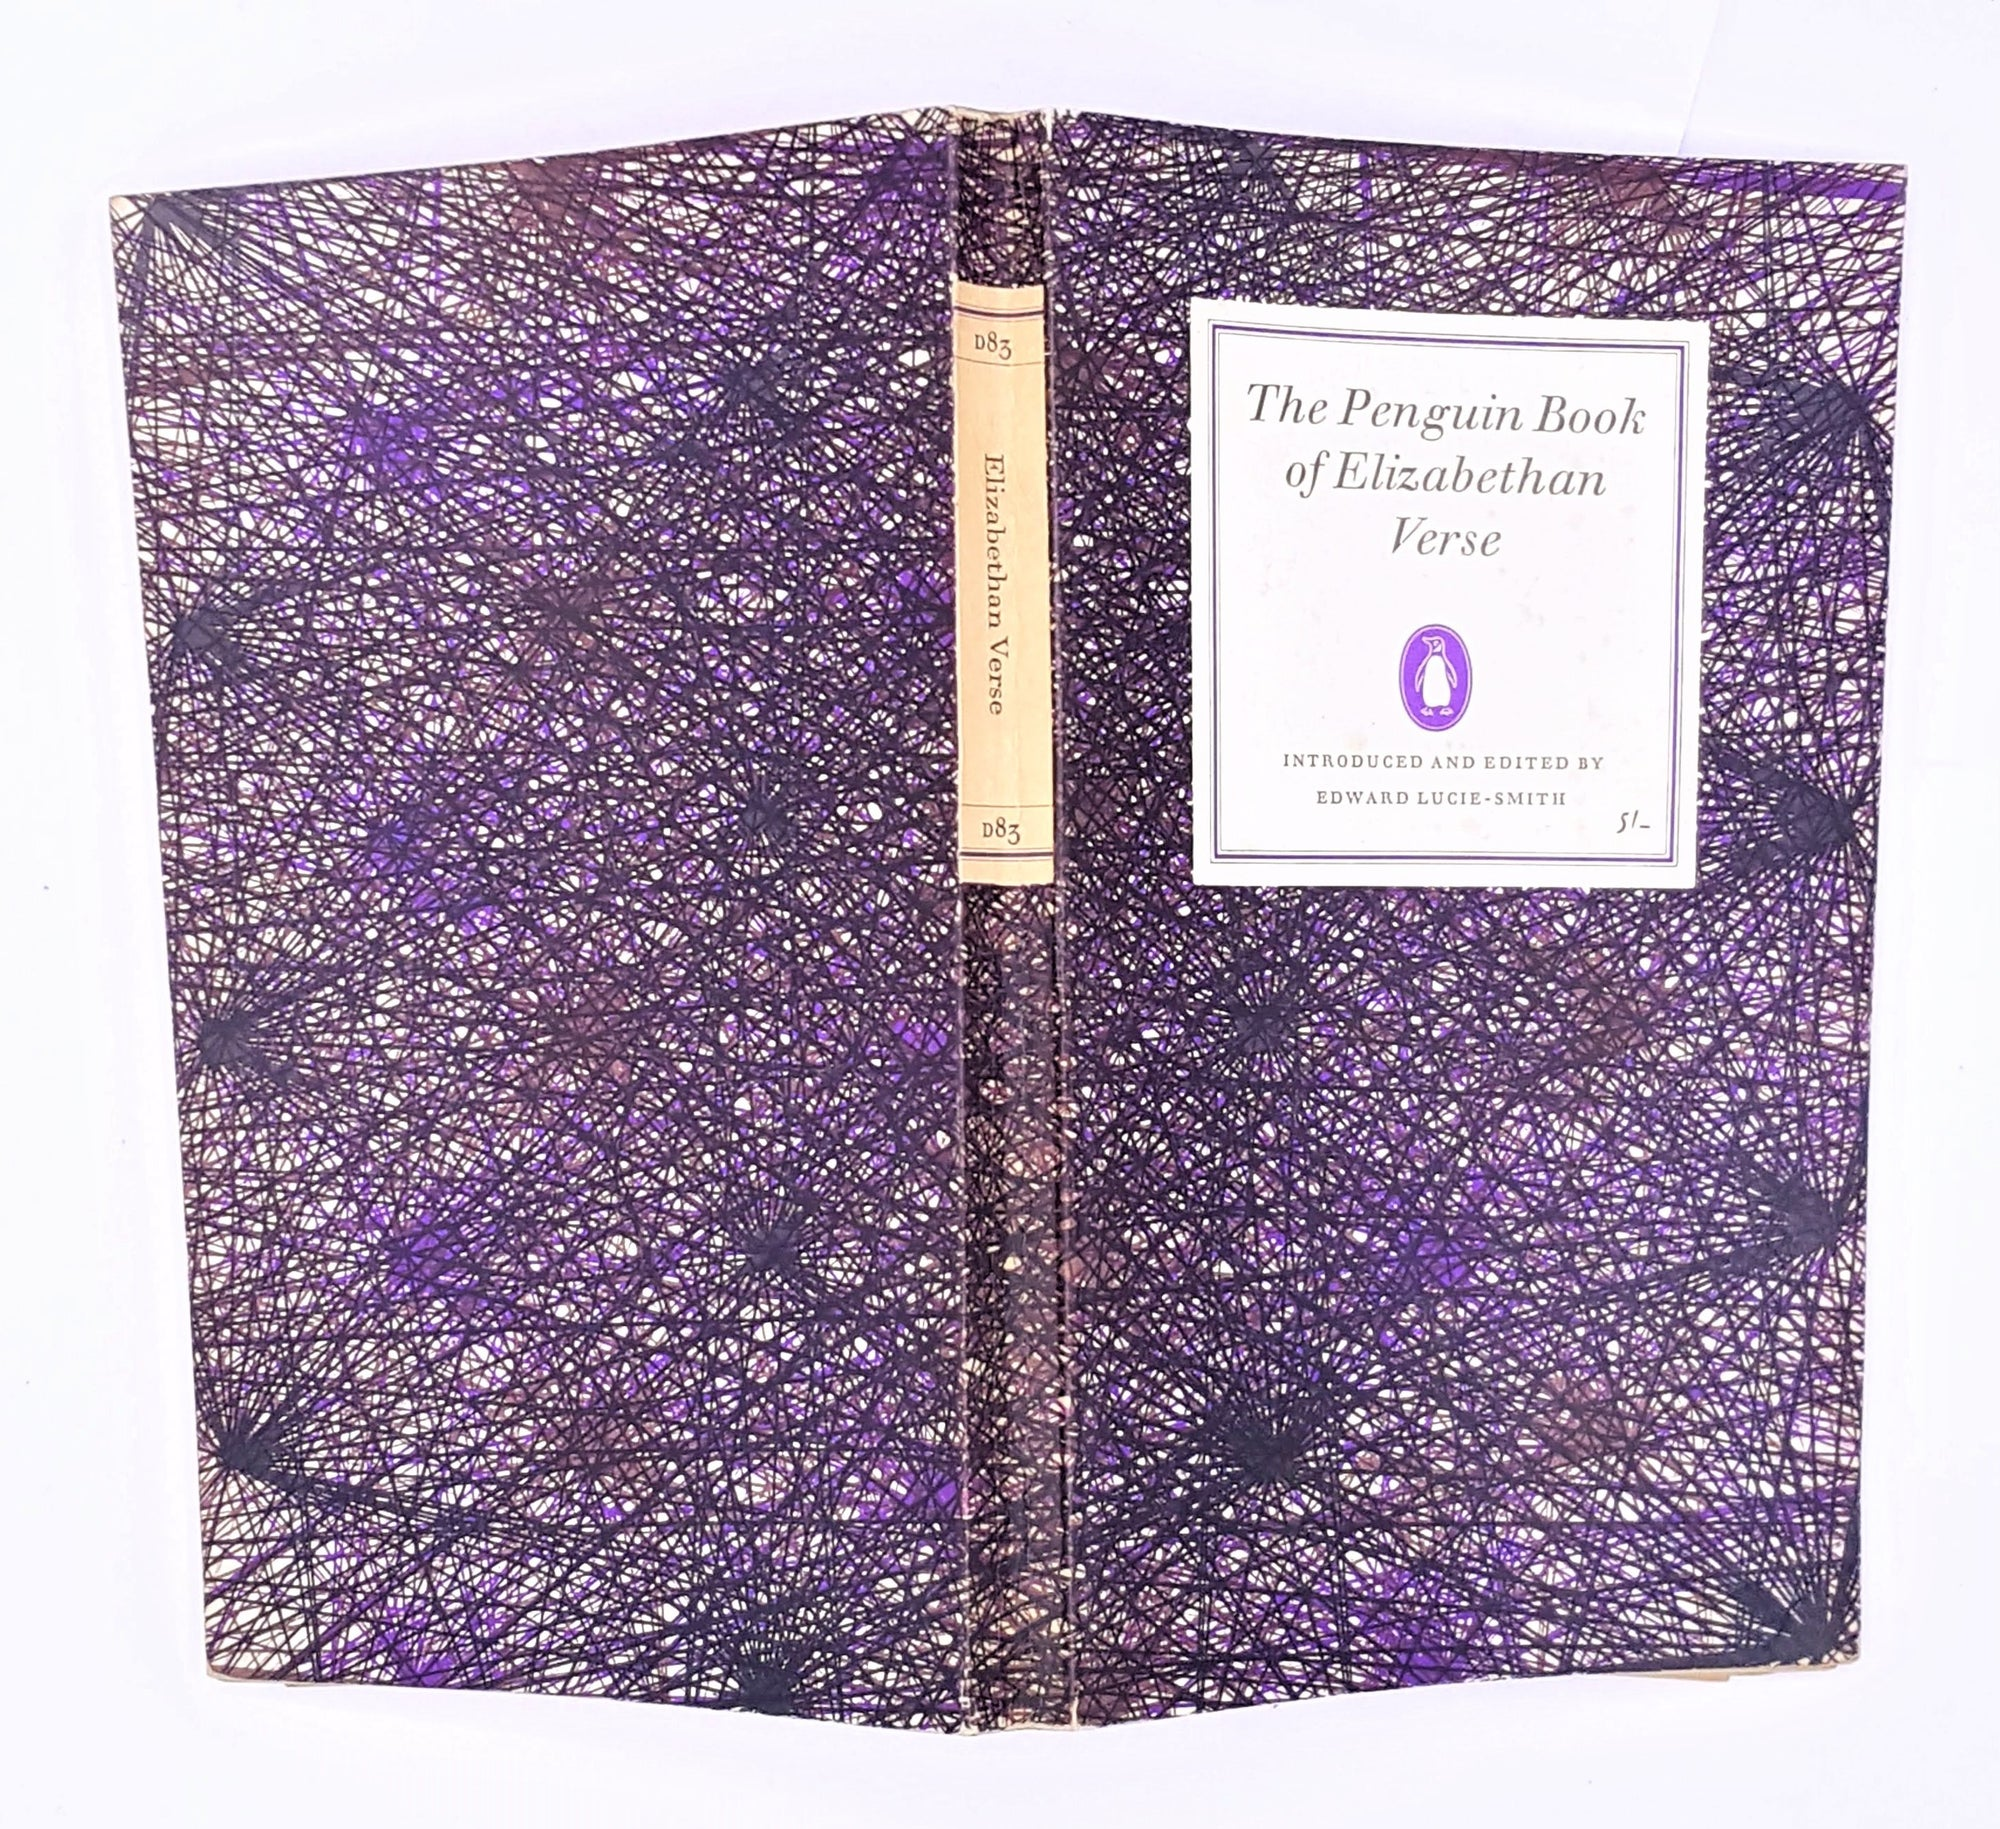 poetry-poems-vintage-patterned-old-decorative-antique-poetry-collection-verse-english-elizabethan-country-house-library-purple-thrift-books-penguin-classic